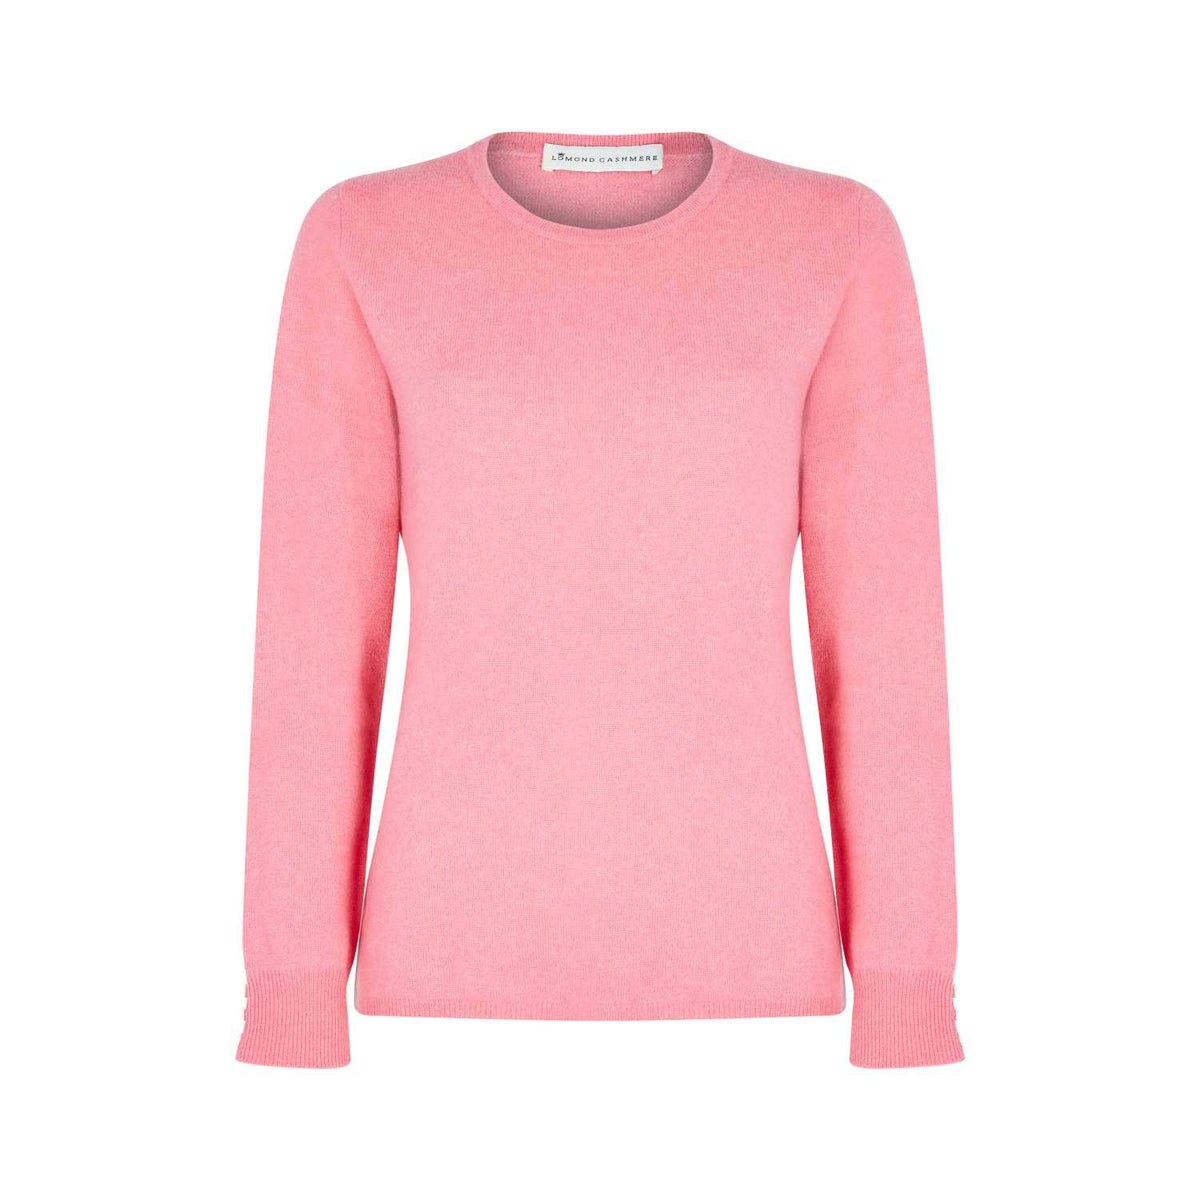 Lomond Cashmere | Ladies 2-Ply Cashmere Round Neck | Candy Pink | Shop now at The Cashmere Choice | London